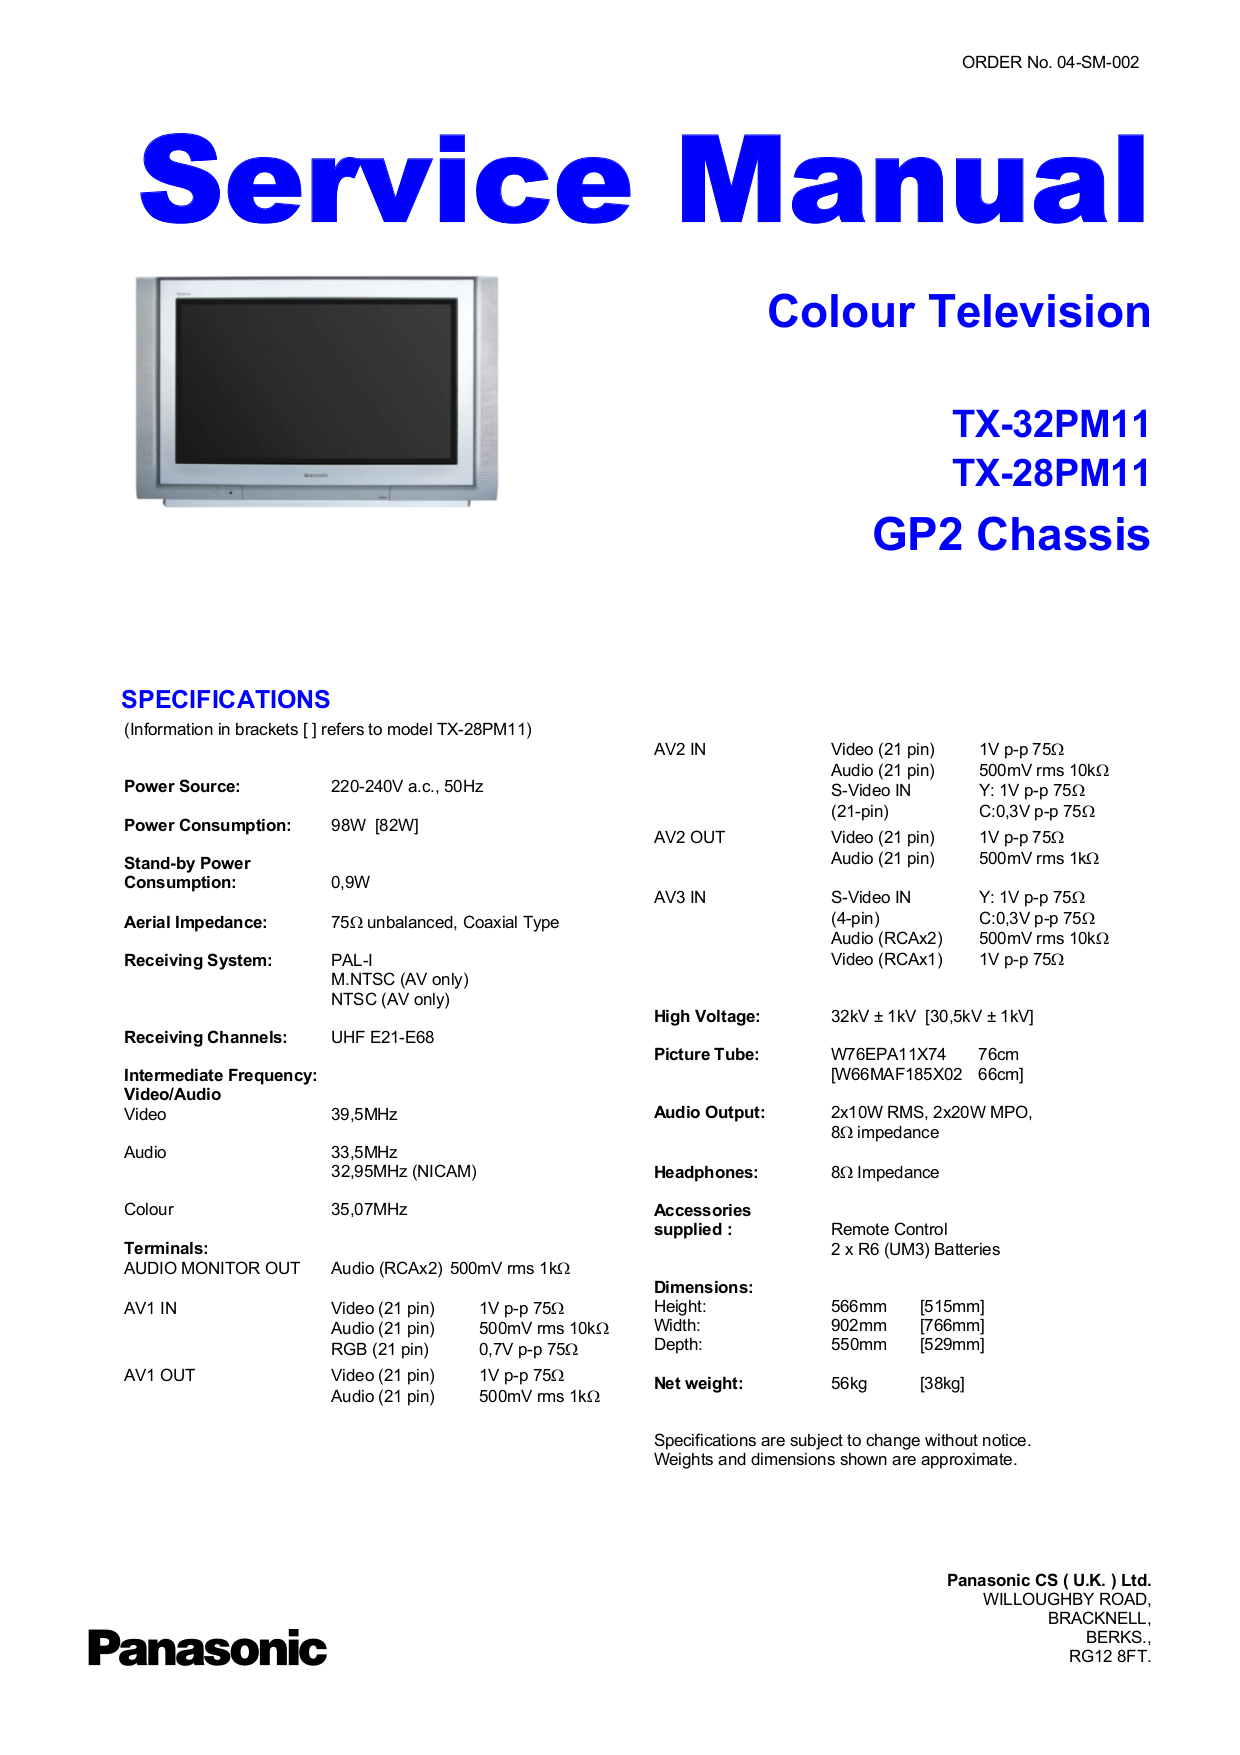 pdf for LG TV RL-JA20 manual